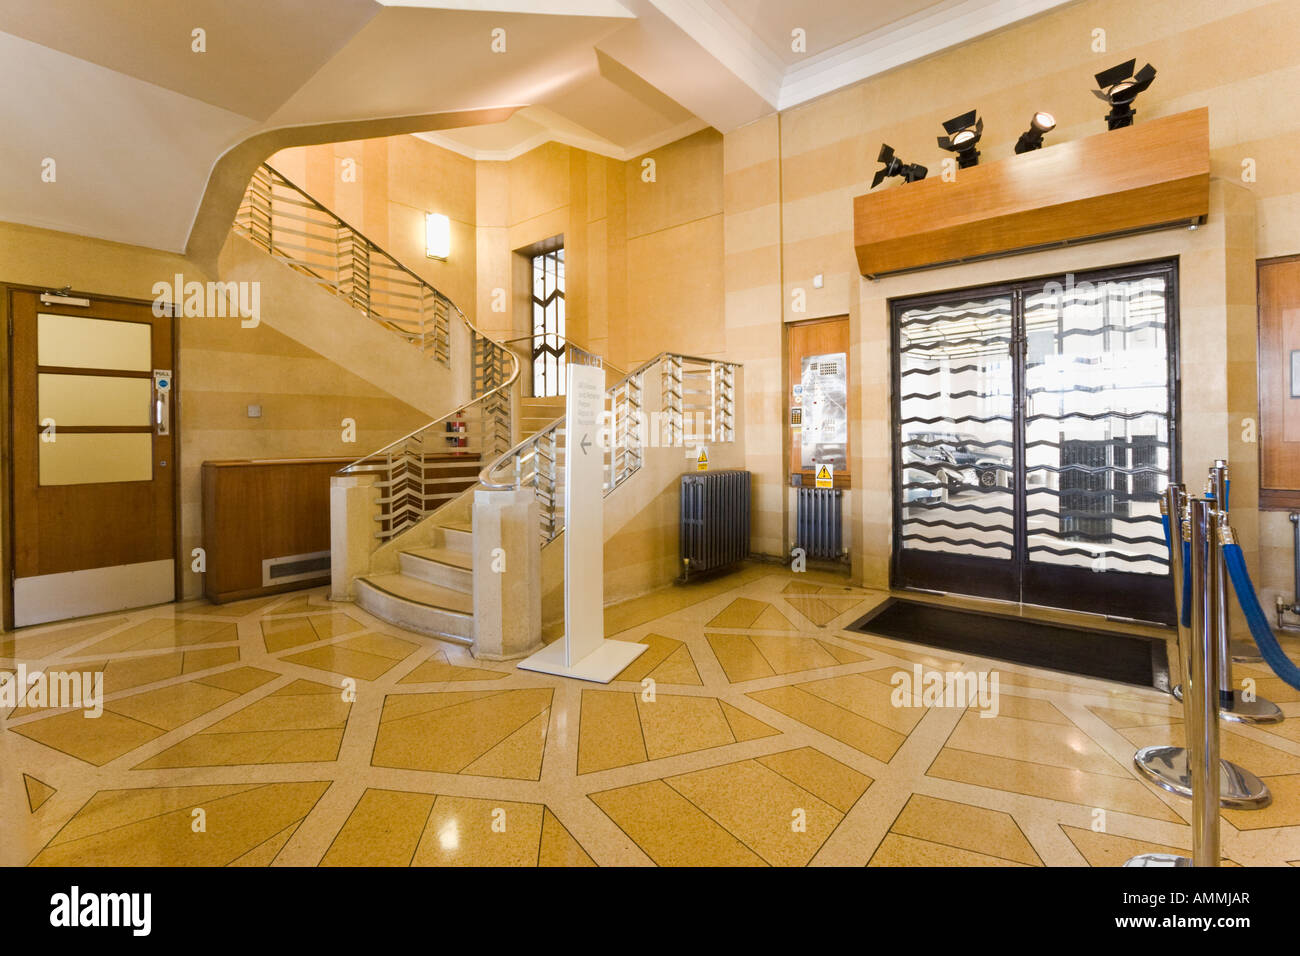 art deco hallway interior st olaf house london stock photo 15297310